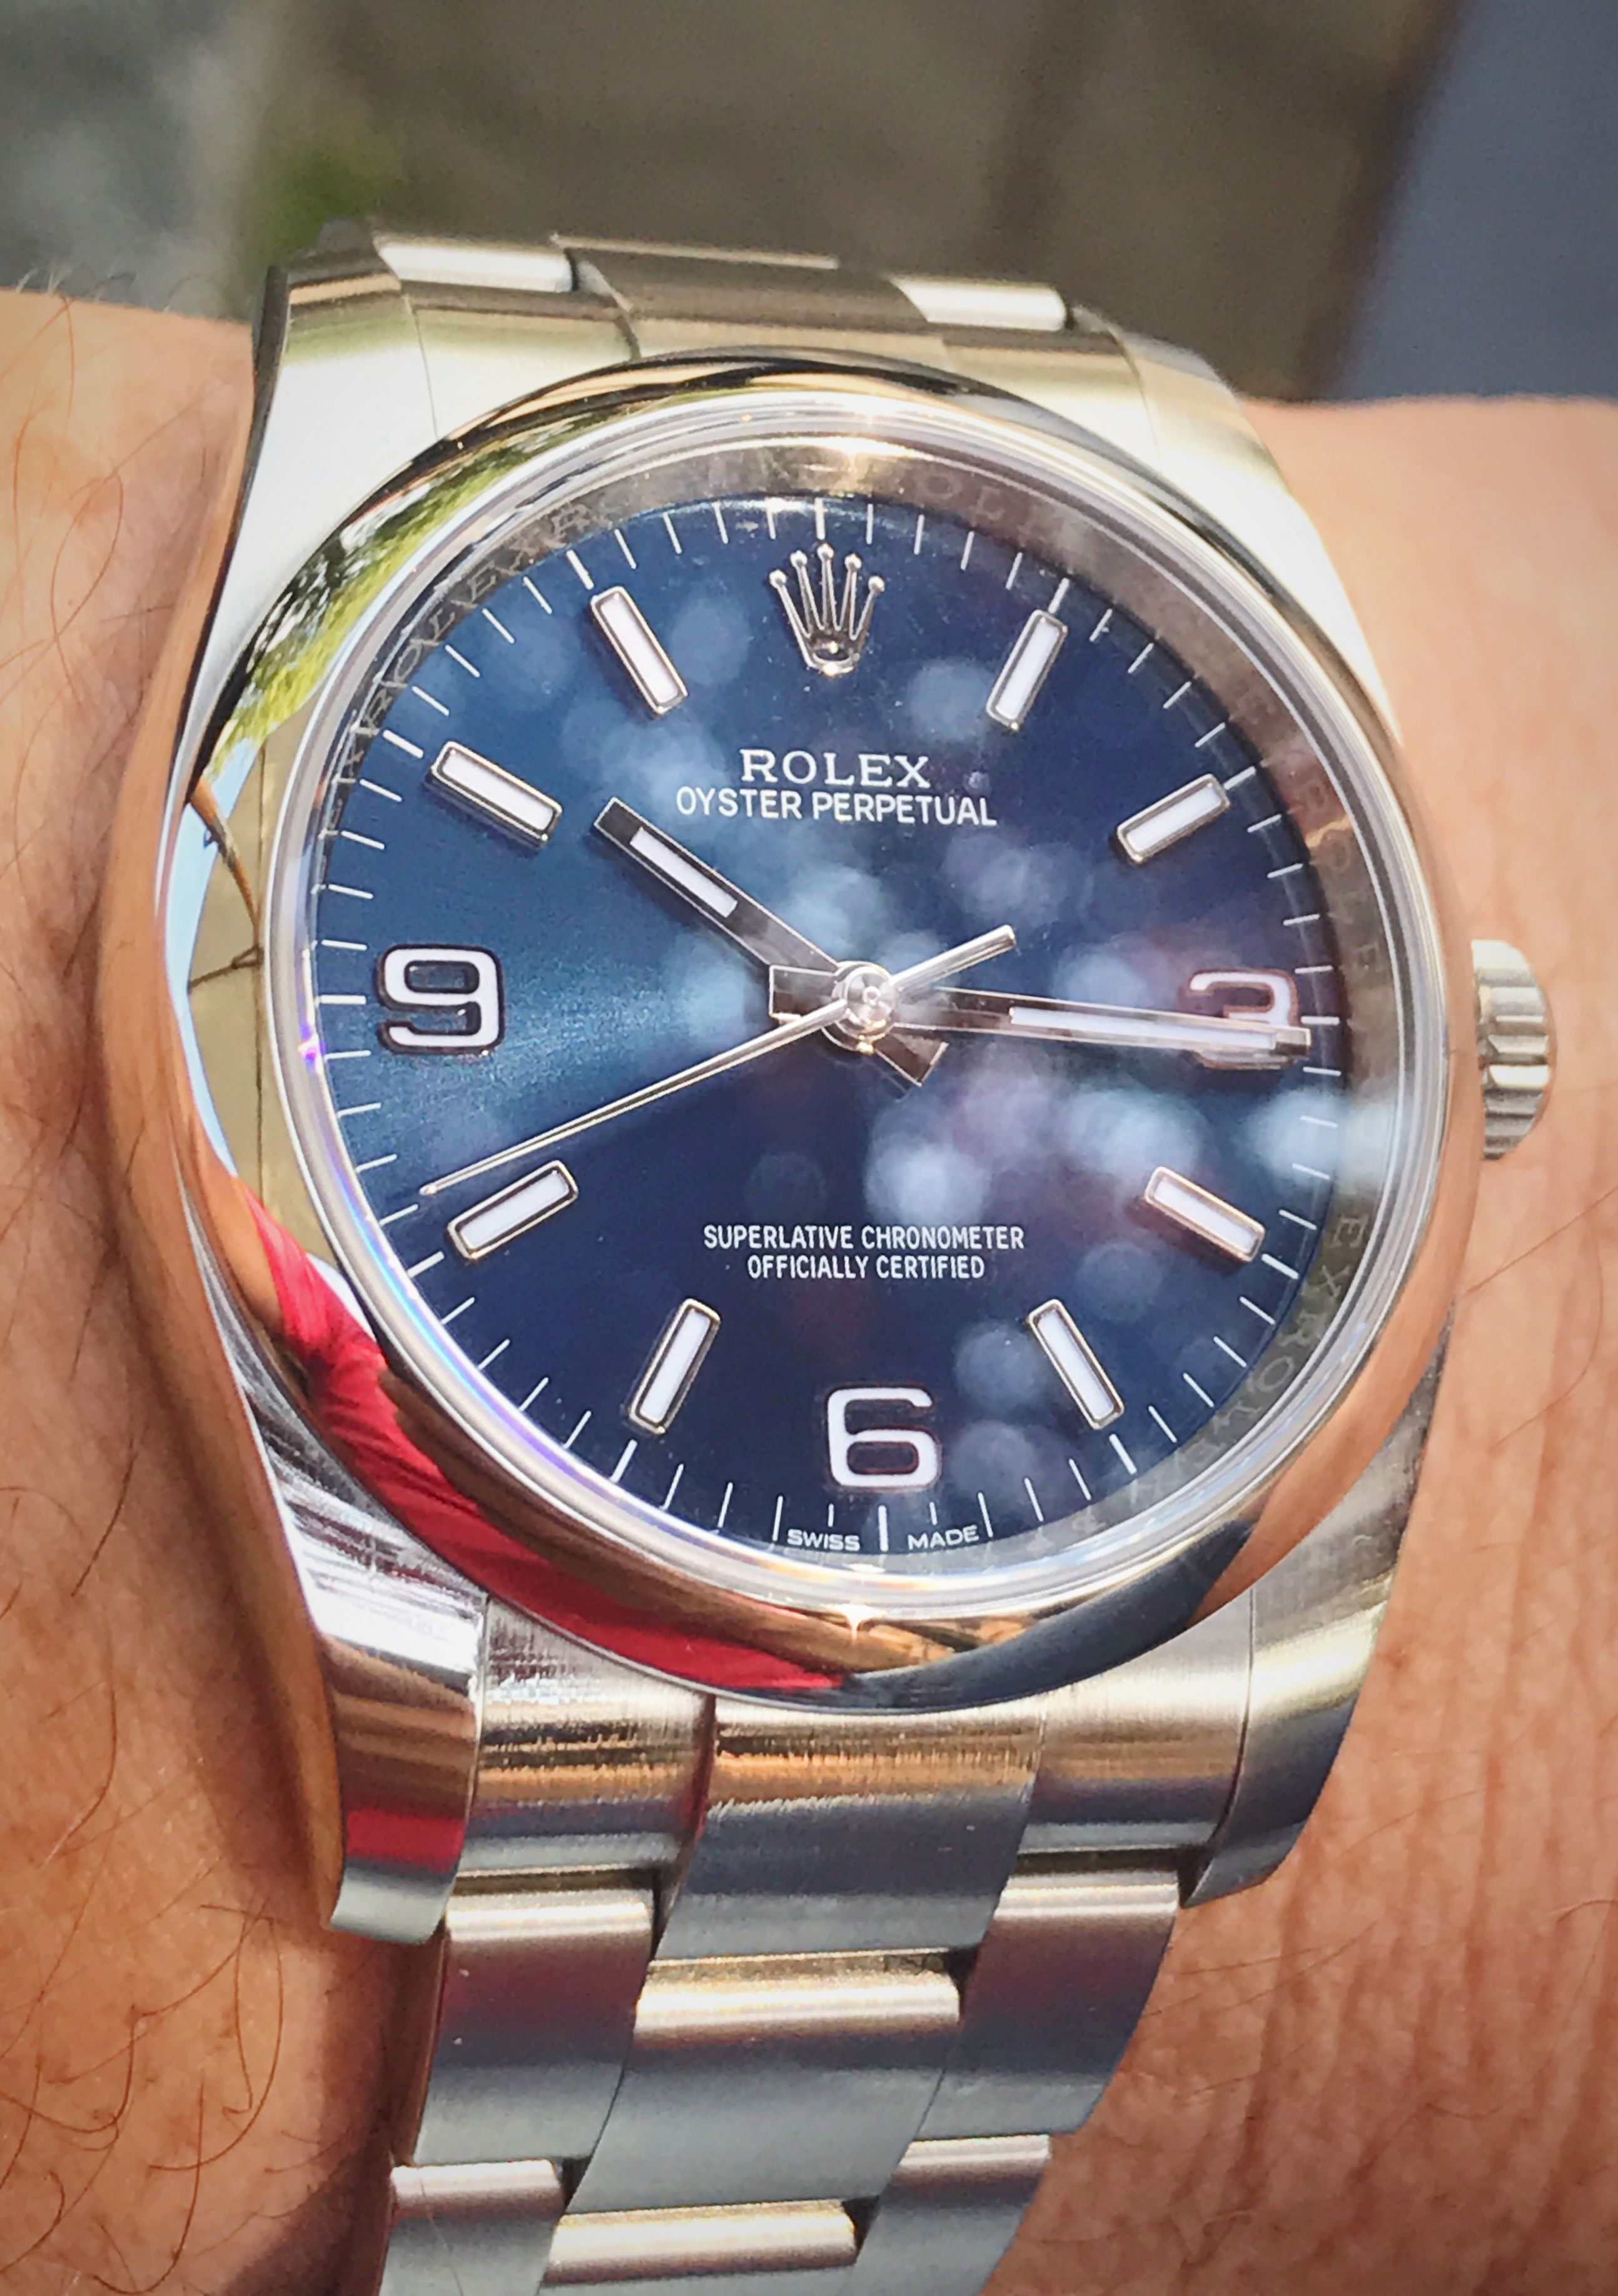 fa3c72755ca Rolex Oyster Perpetual 116000 36mm blue dial | Wrist watches that I ...